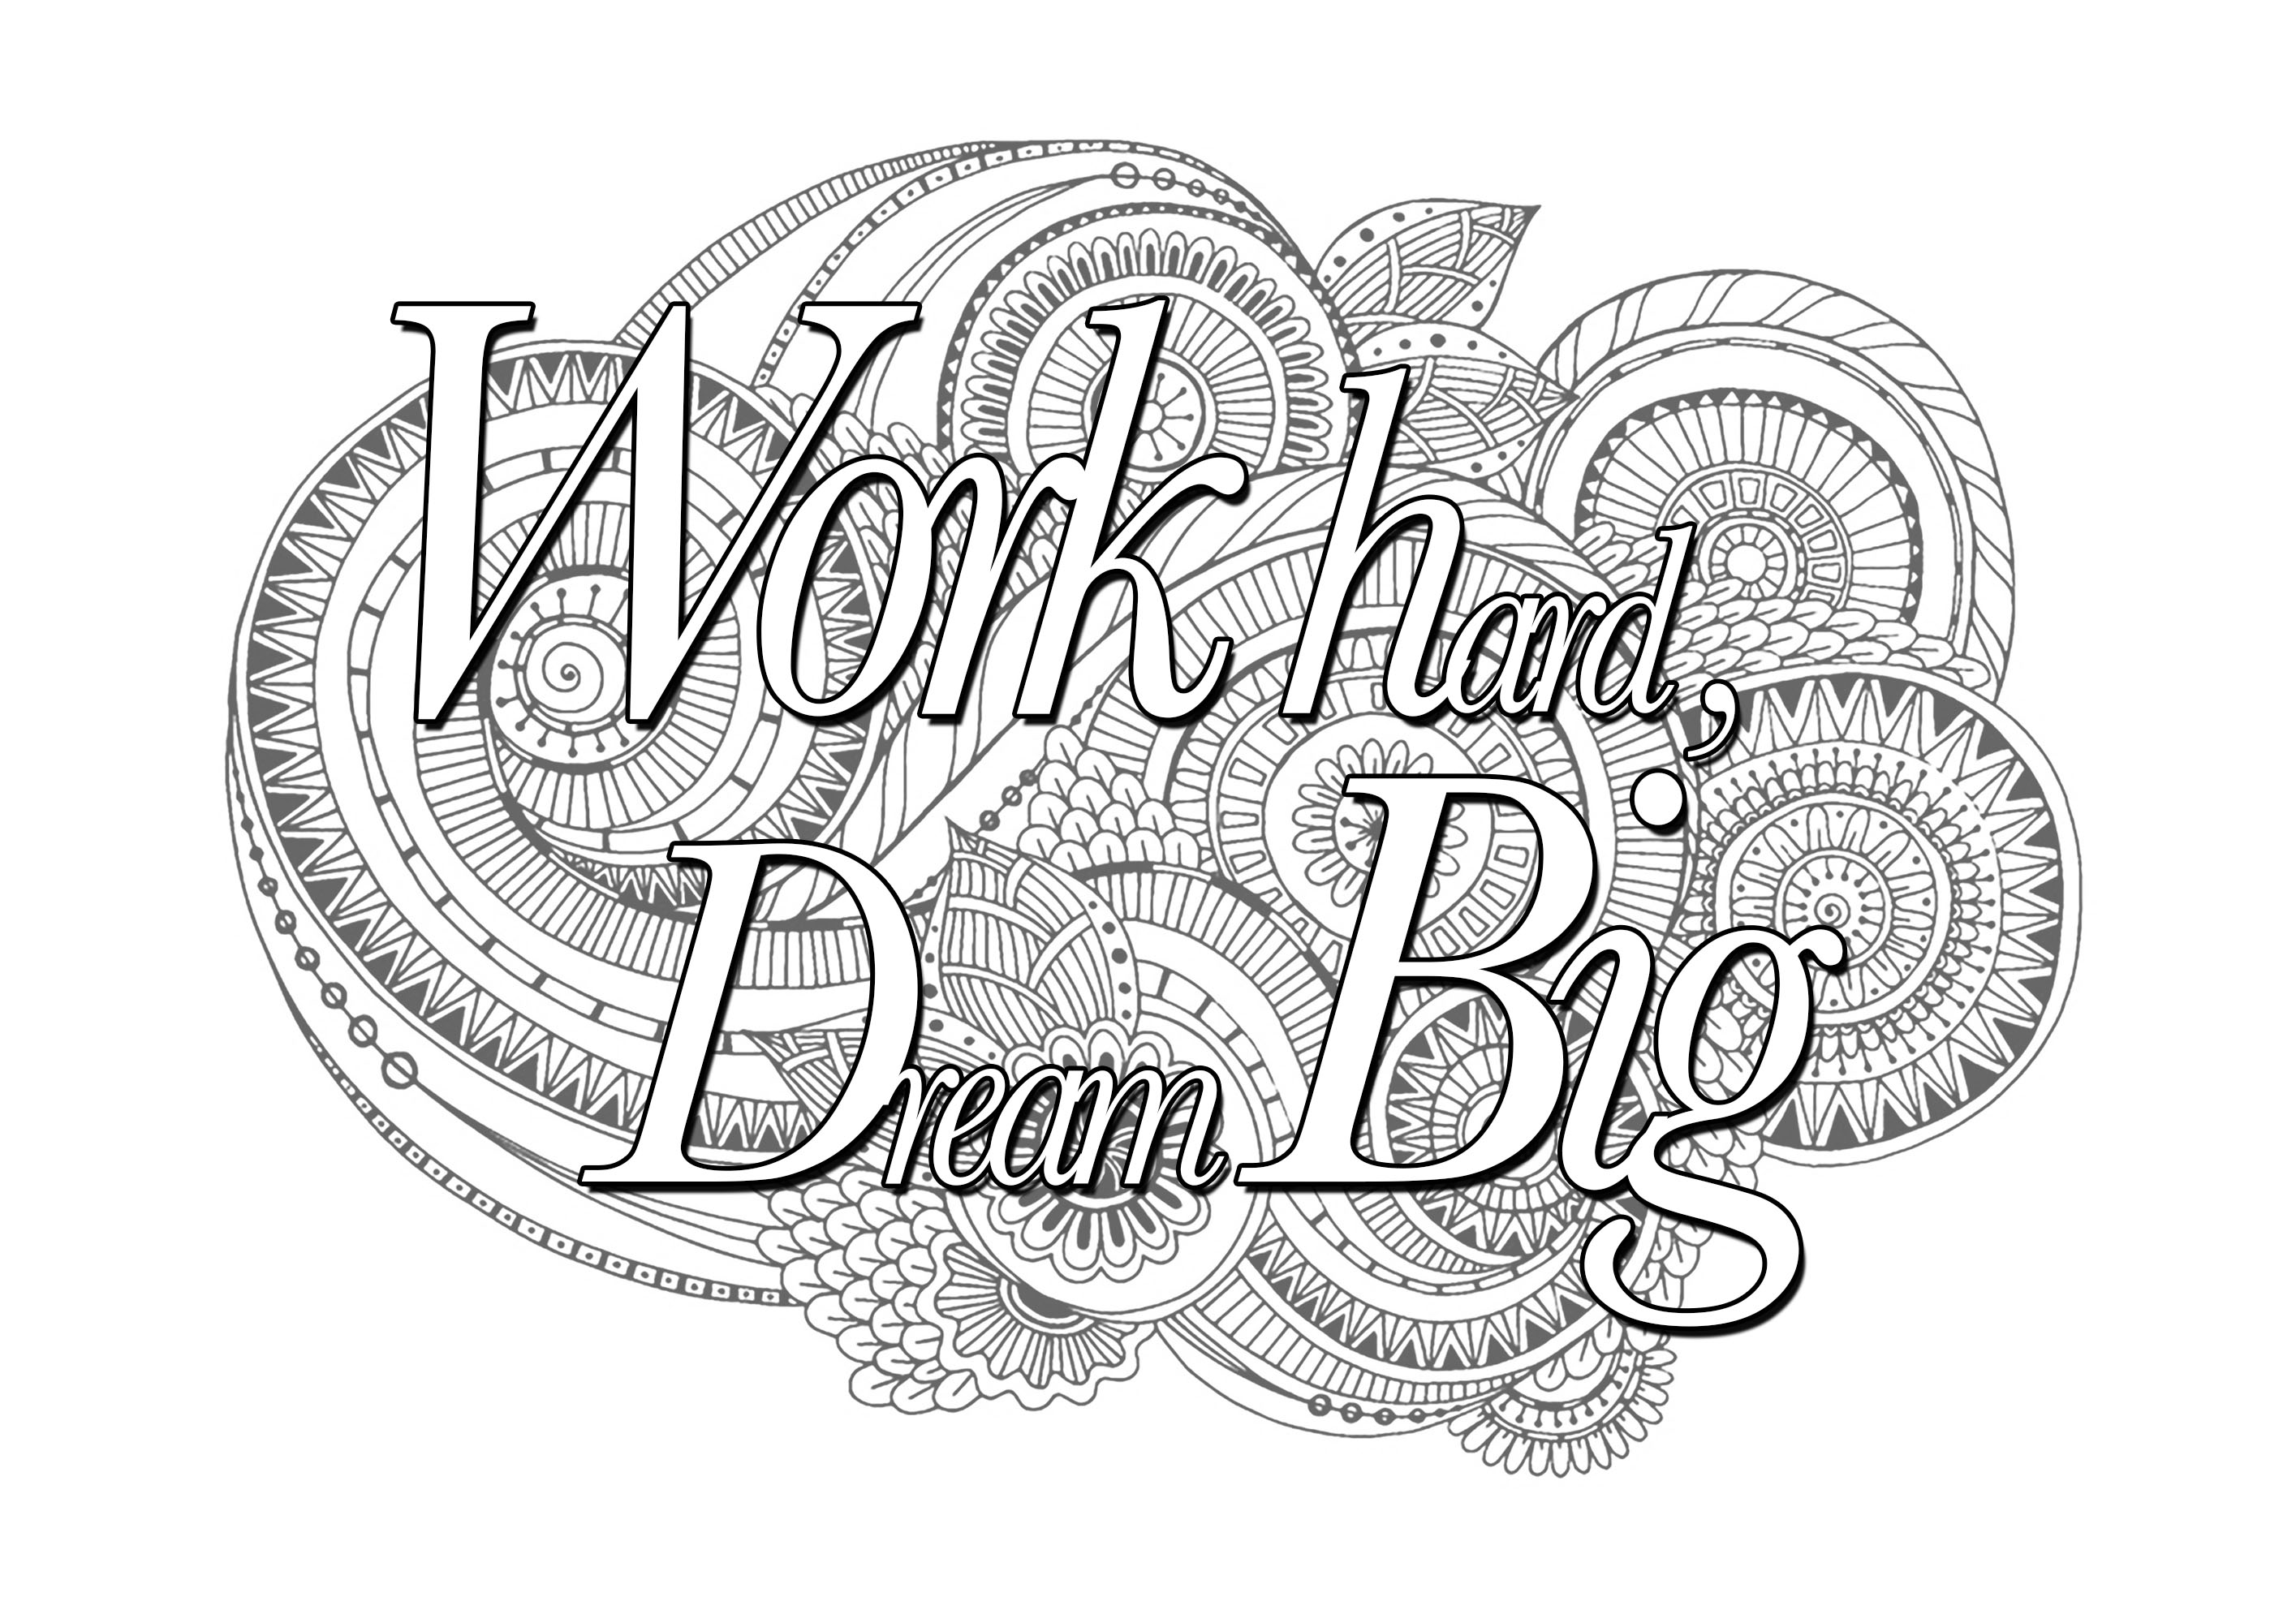 Quote work hard dream big